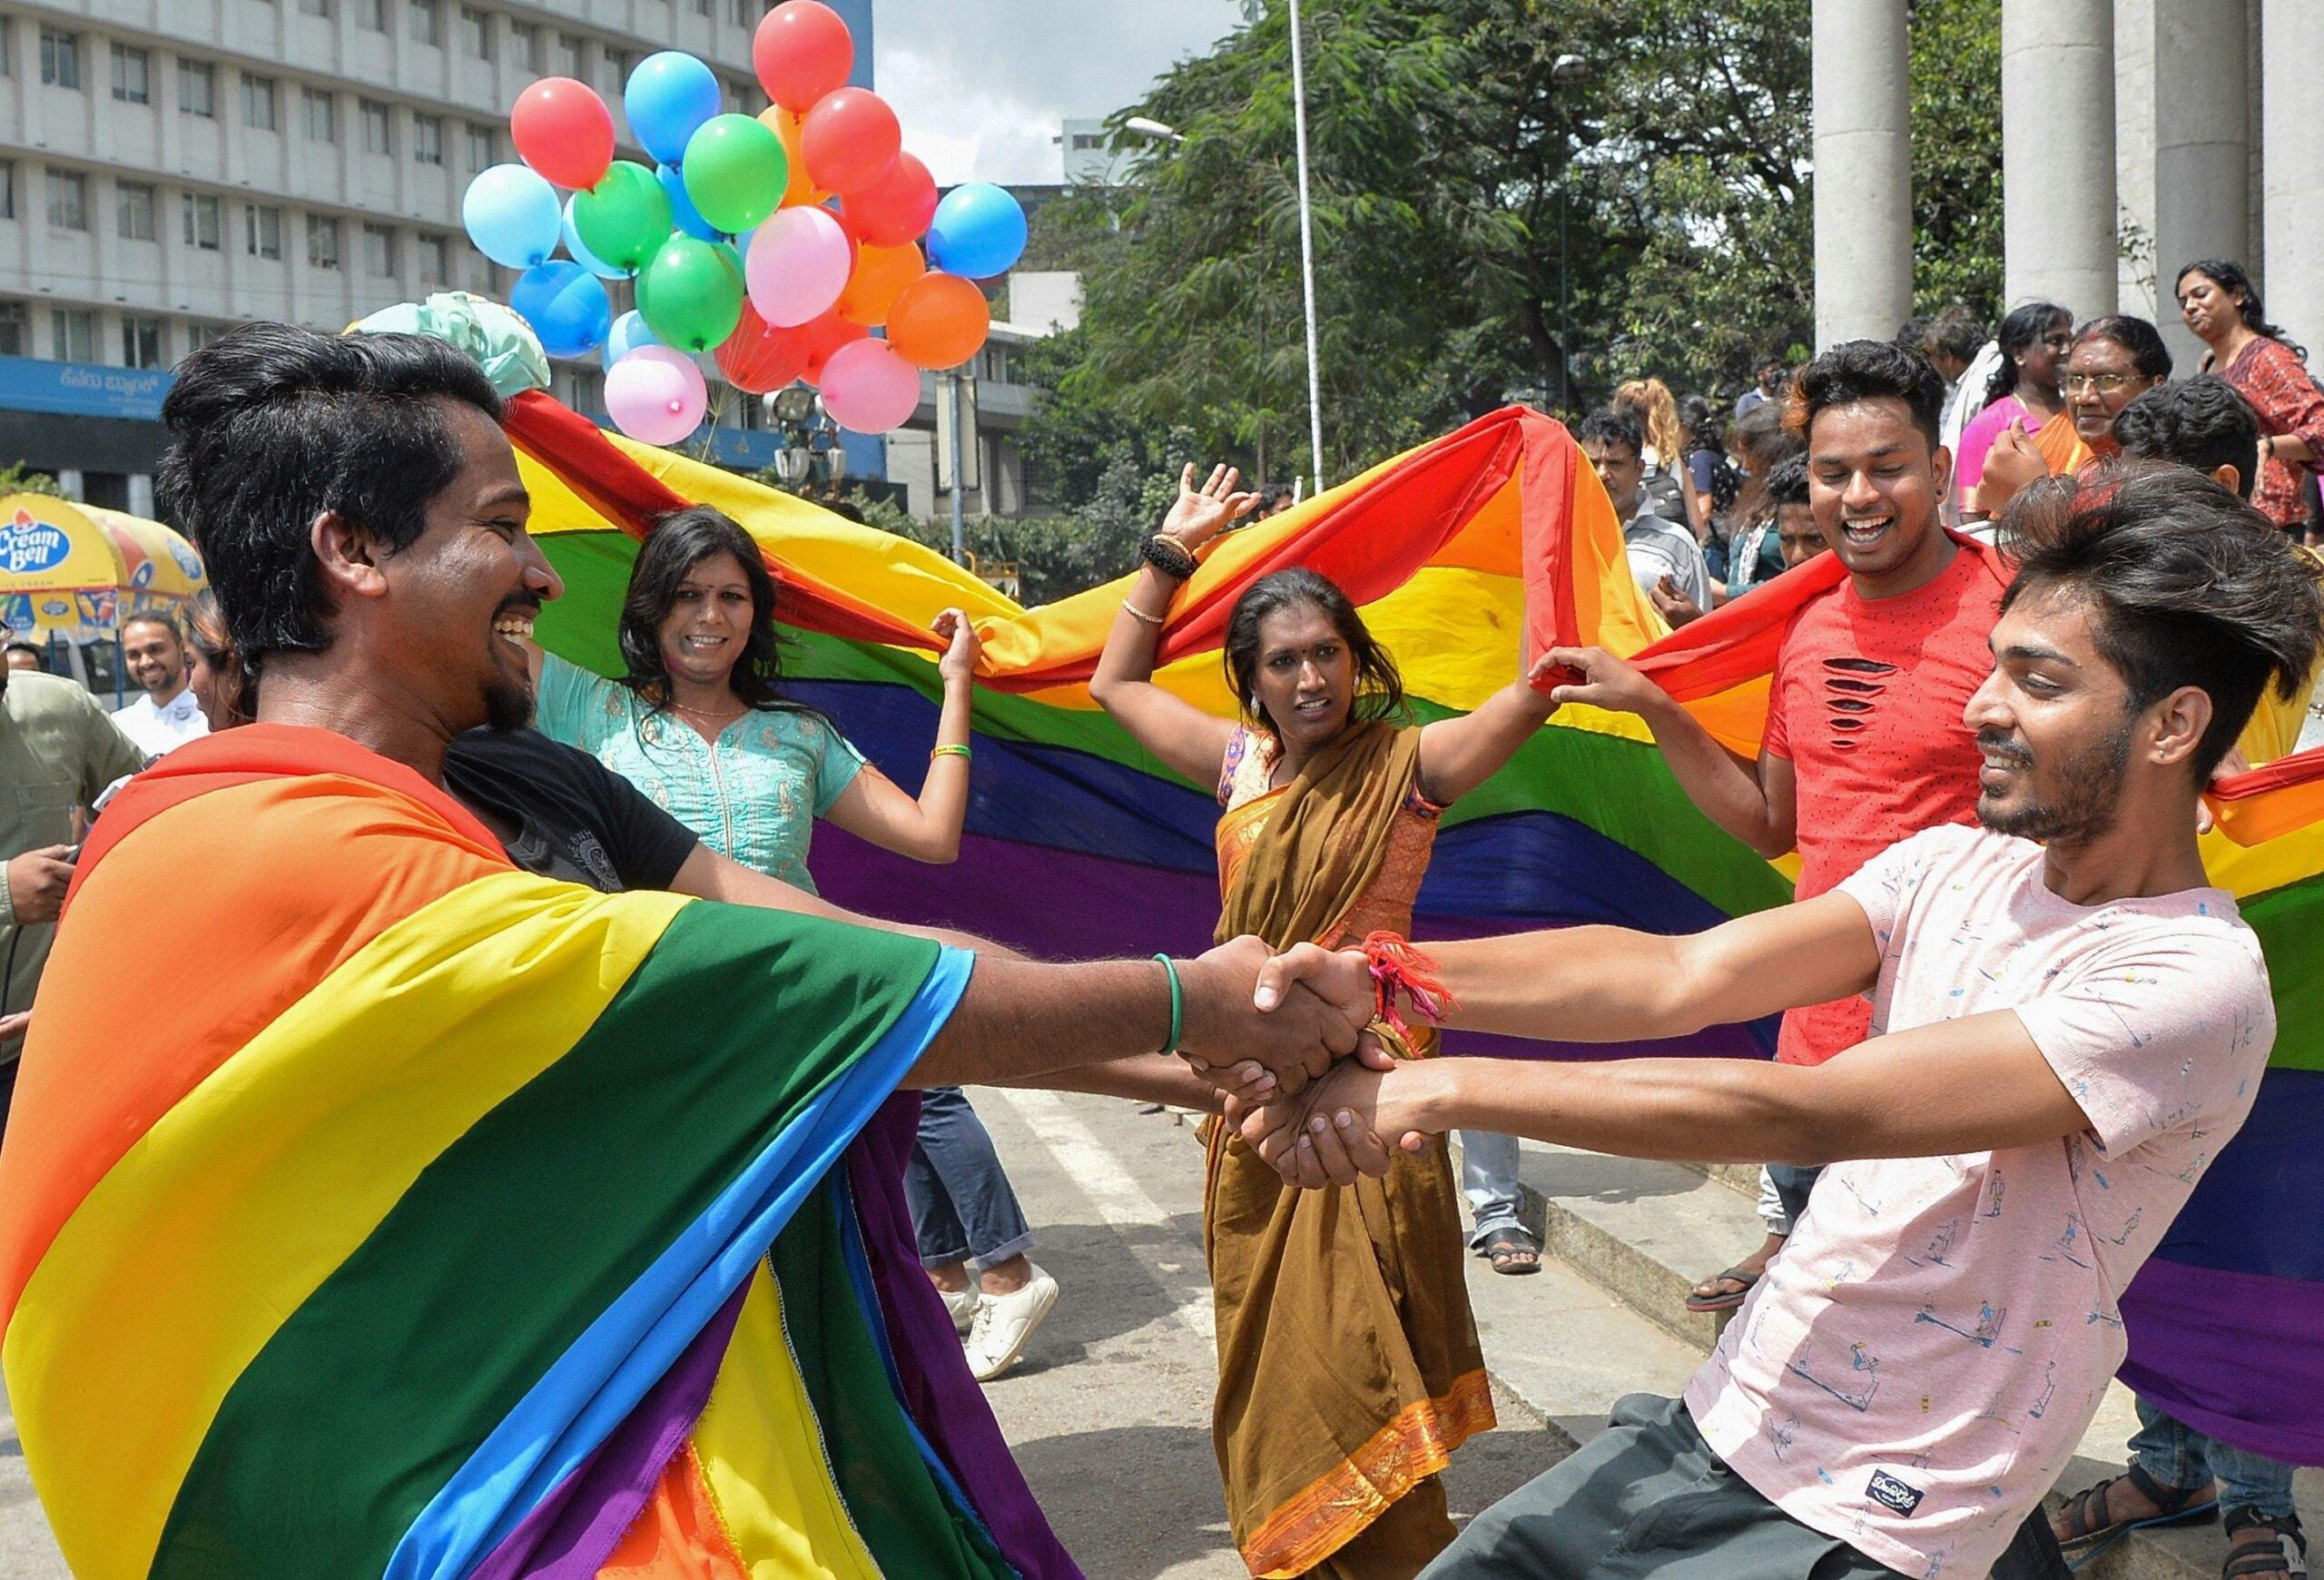 Decriminalising gay sex is a huge victory. But India still faces many challenges